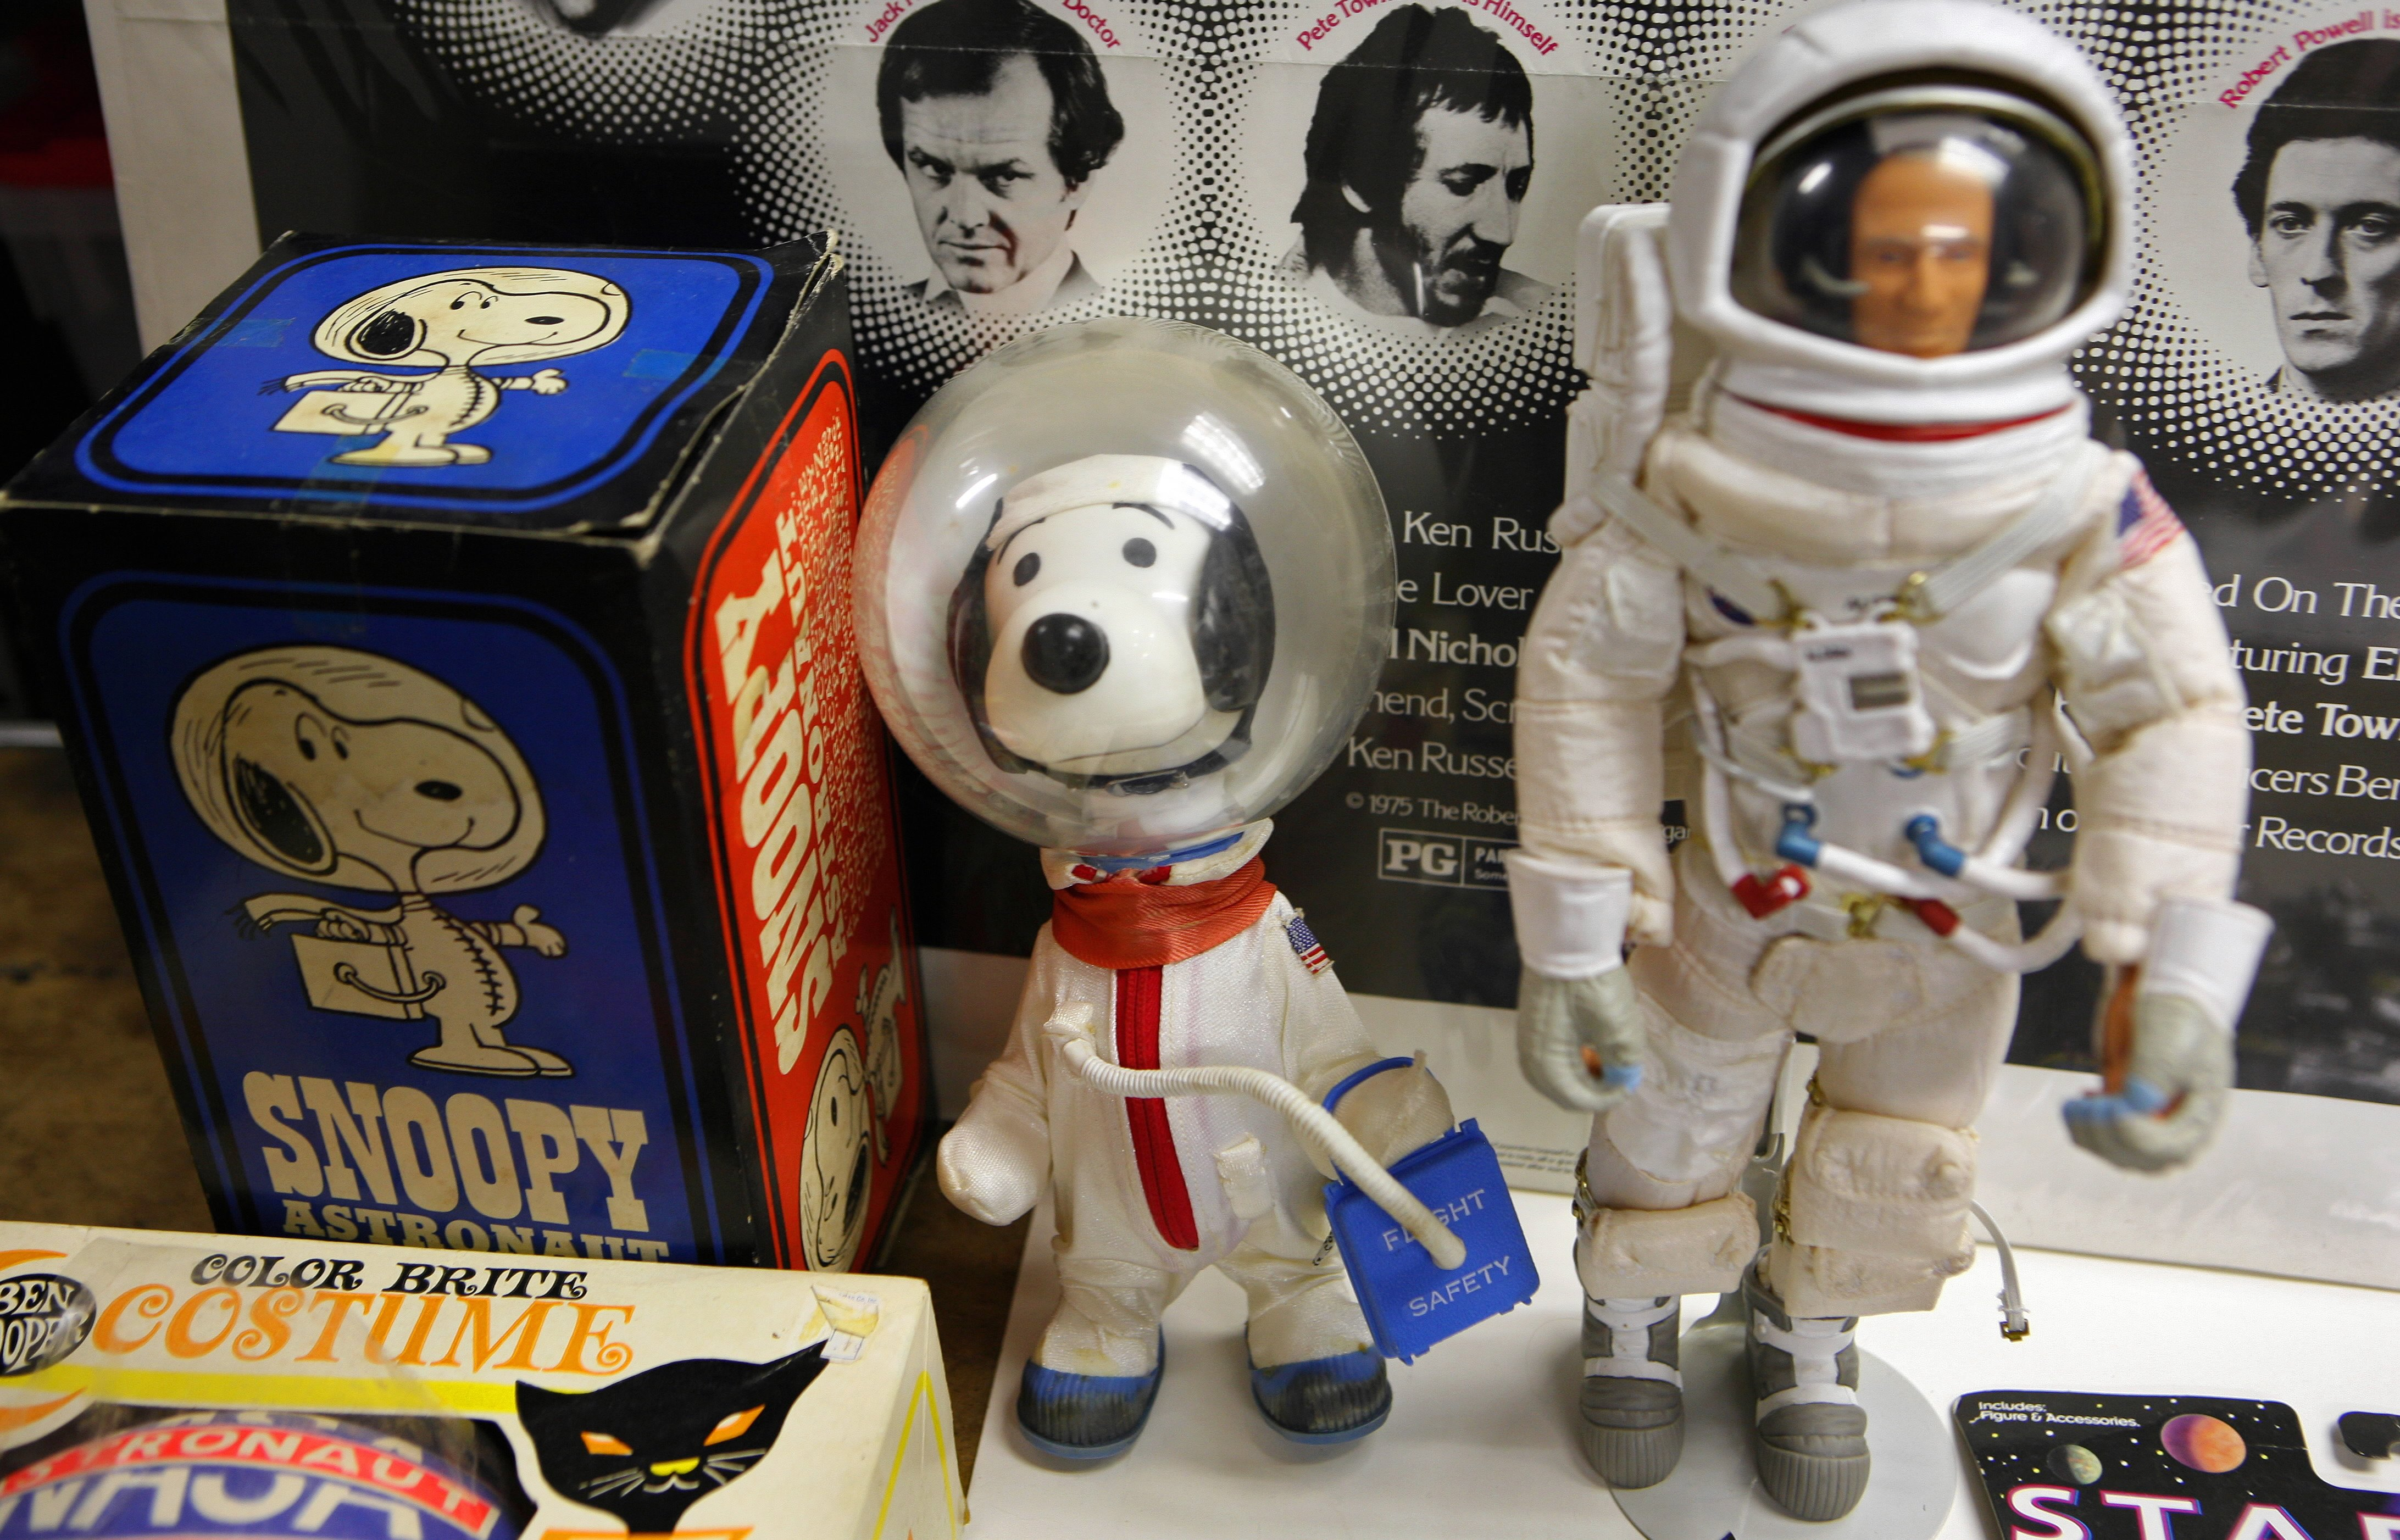 Space Exploration facts